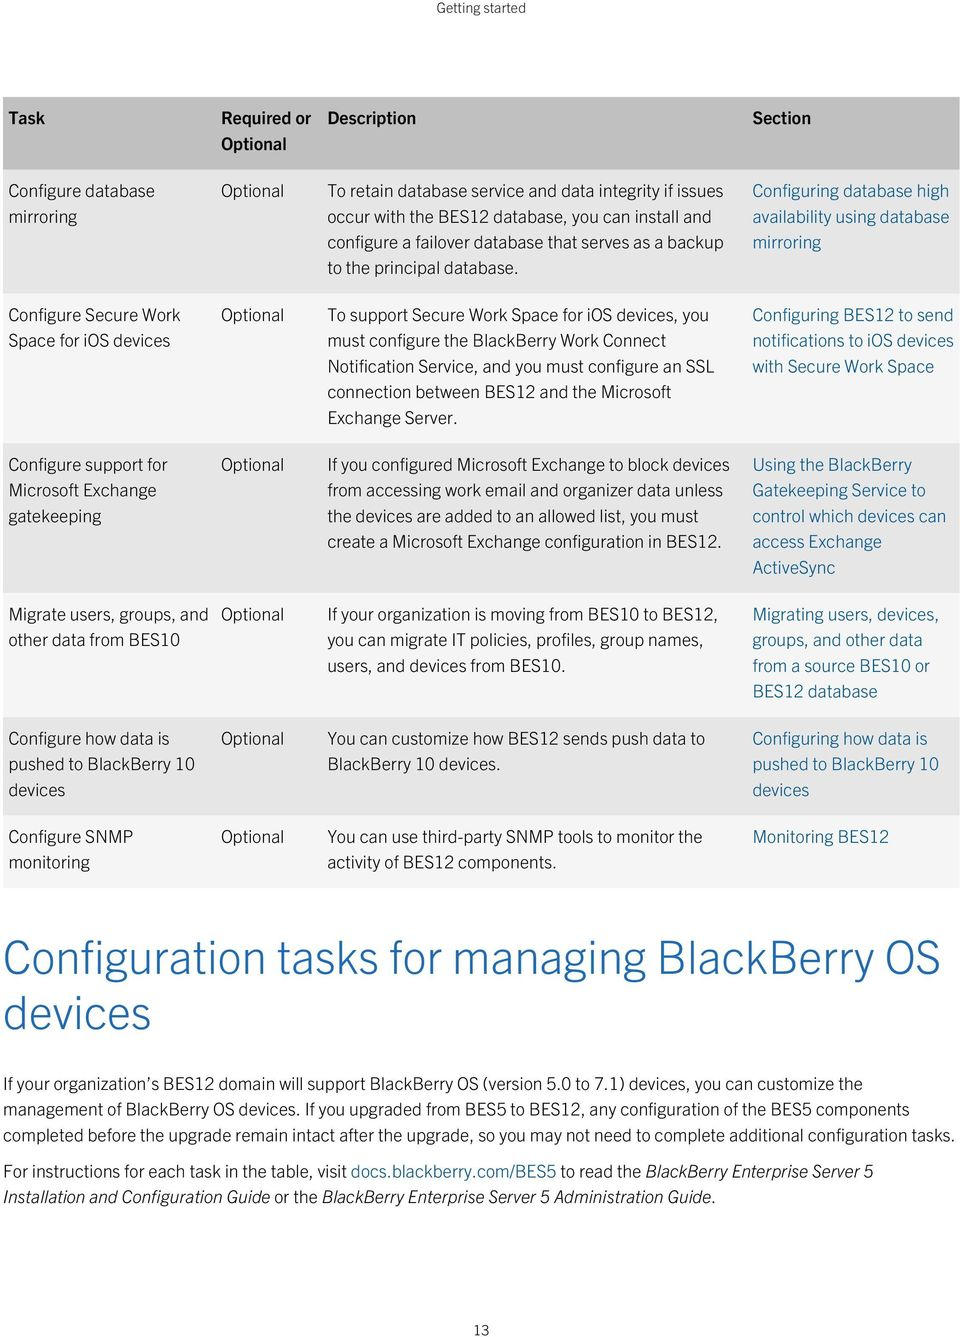 Configuring database high availability using database mirroring Configure Secure Work Space for ios devices Optional To support Secure Work Space for ios devices, you must configure the BlackBerry